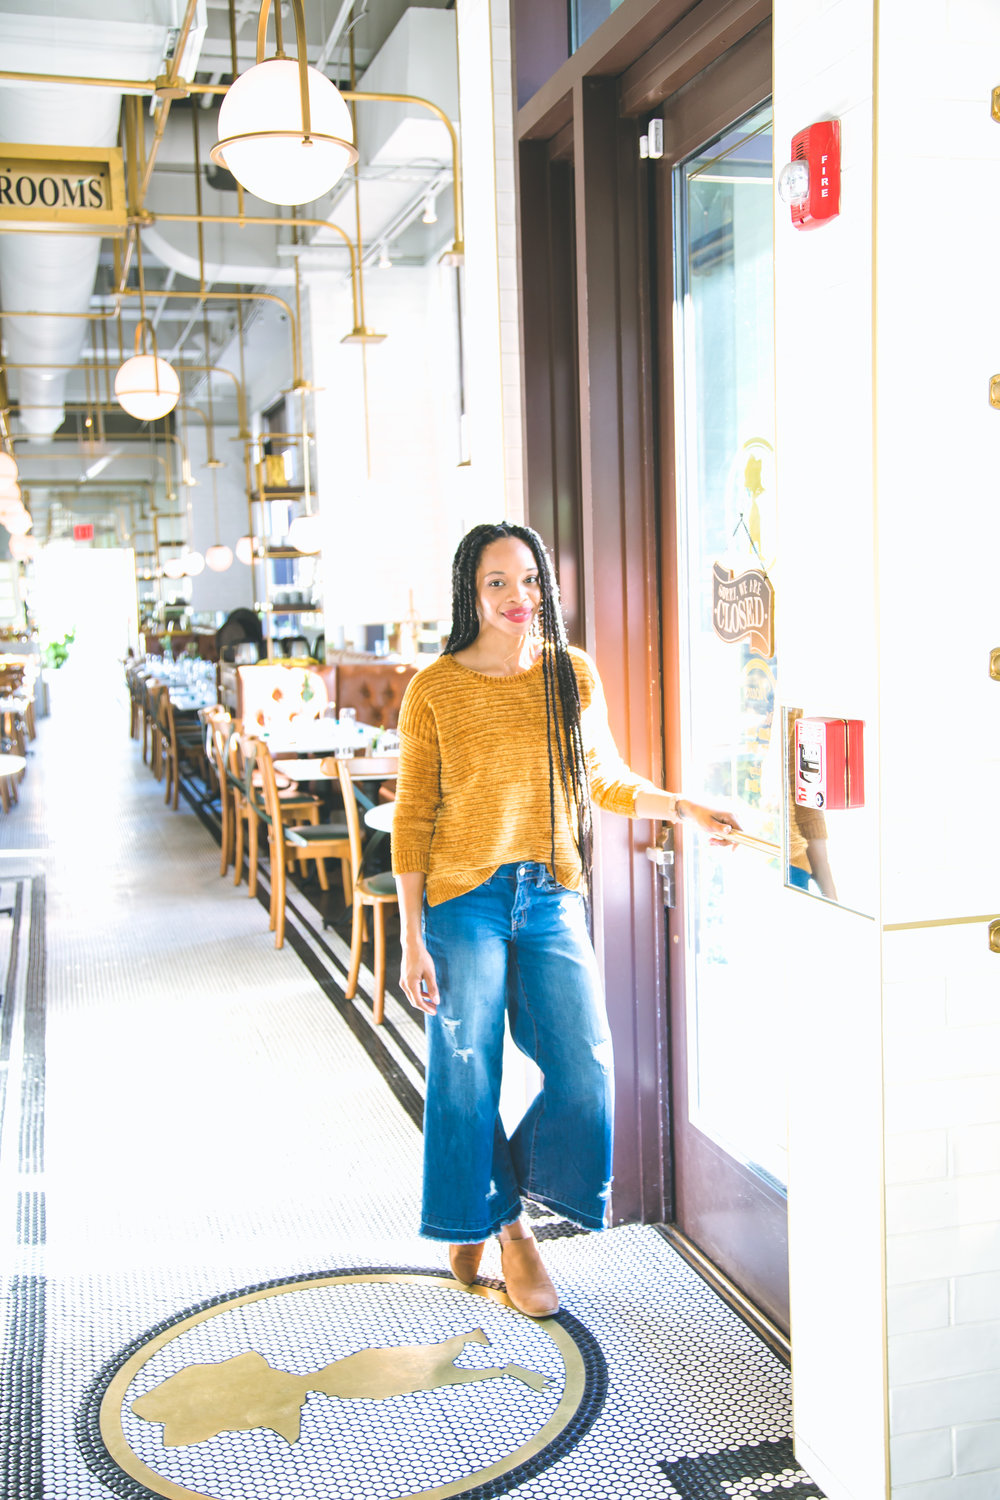 Shelly Carpenter of Shelly C. Studio & Shelly C. Lately Lifestyle Travel Motherhood Blogger in Savannah GA Hinesville GA Little Duck Diner